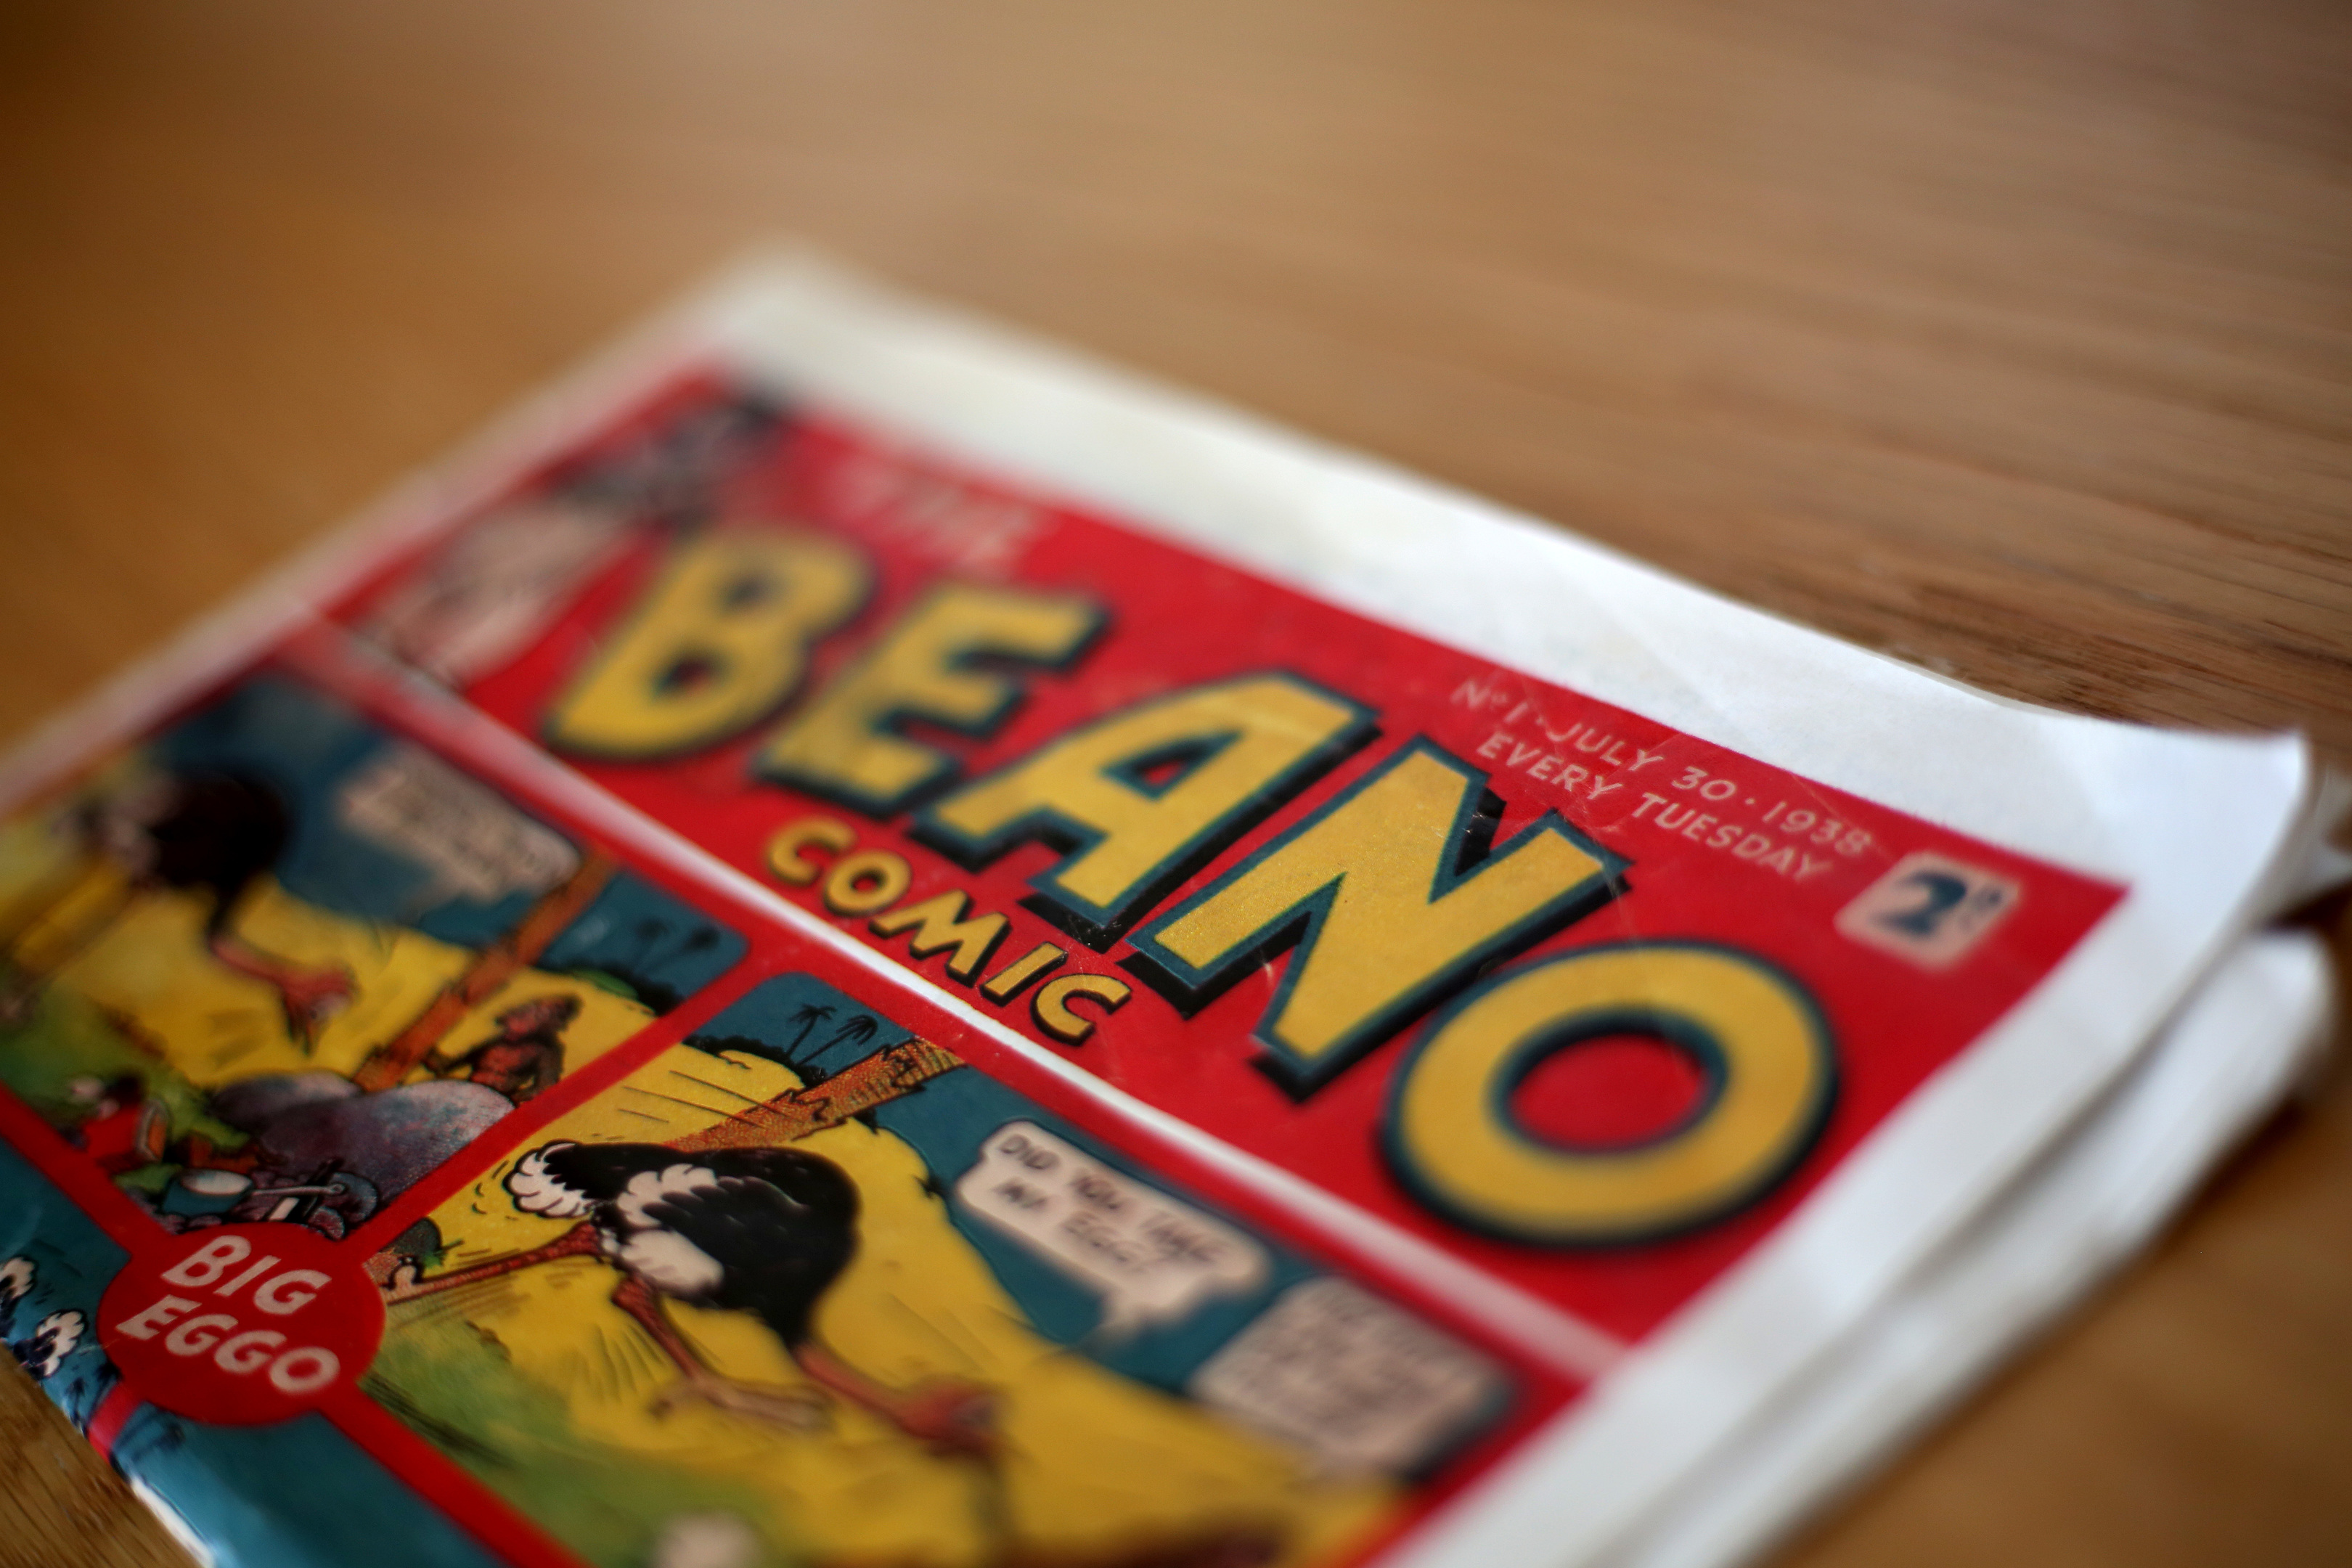 First edition of the Beano comic - estimated to be worth up to £20,000